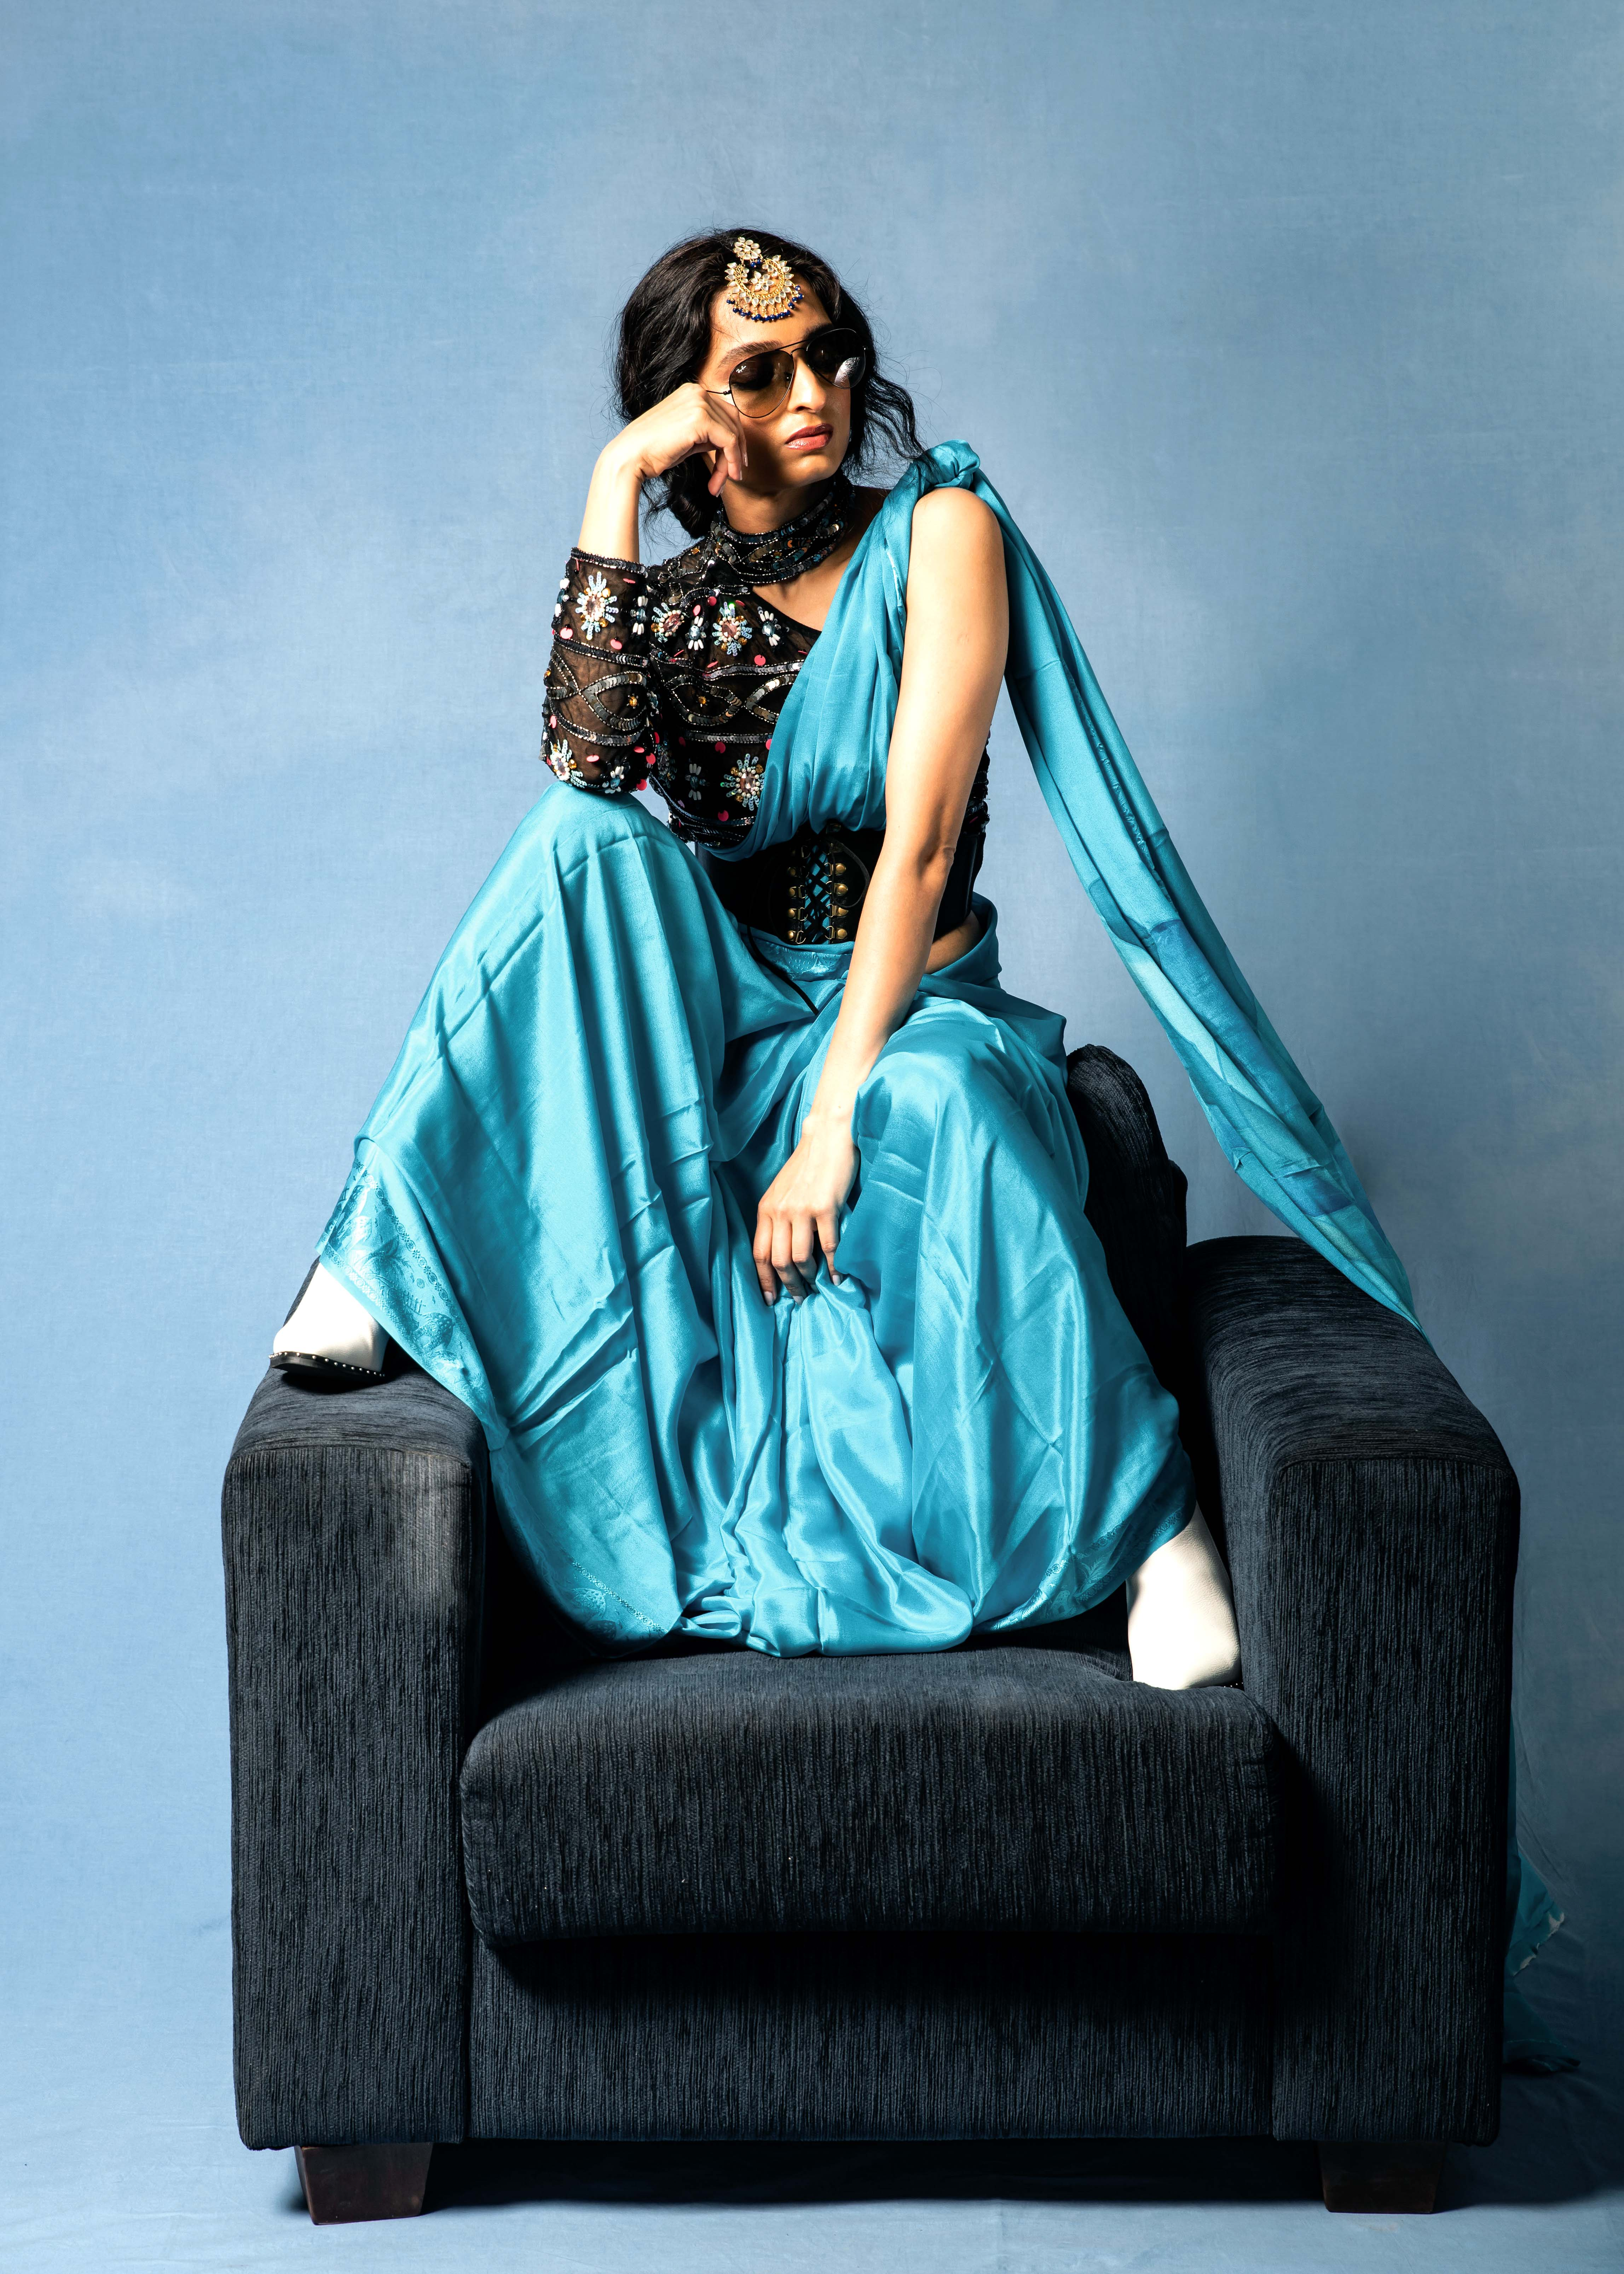 Blue silk saree indian outfit indian style with one shoulder embroidered black blouse and sunglasses and white boots sitting on an arm chair studio photograph